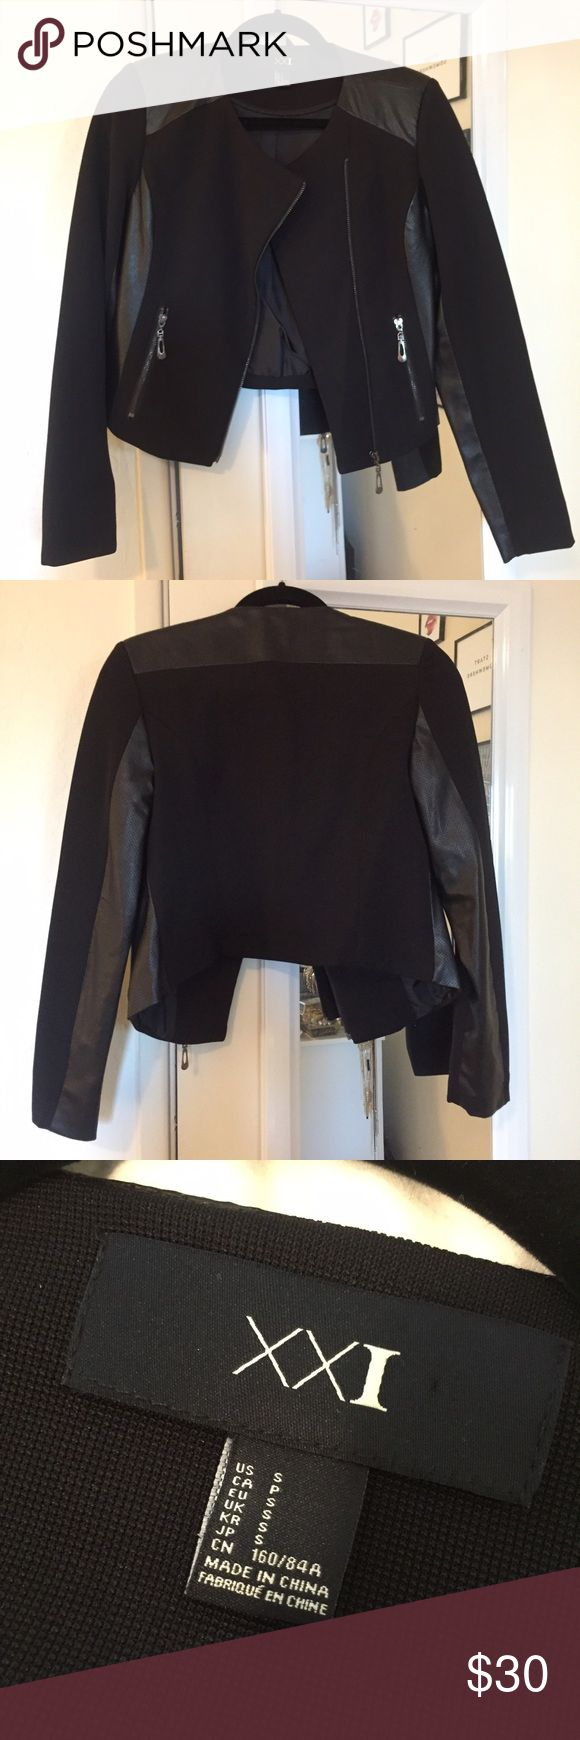 black moto syle jacket with faux leather details black moto syle jacket with faux leather details Forever 21 Jackets & Coats